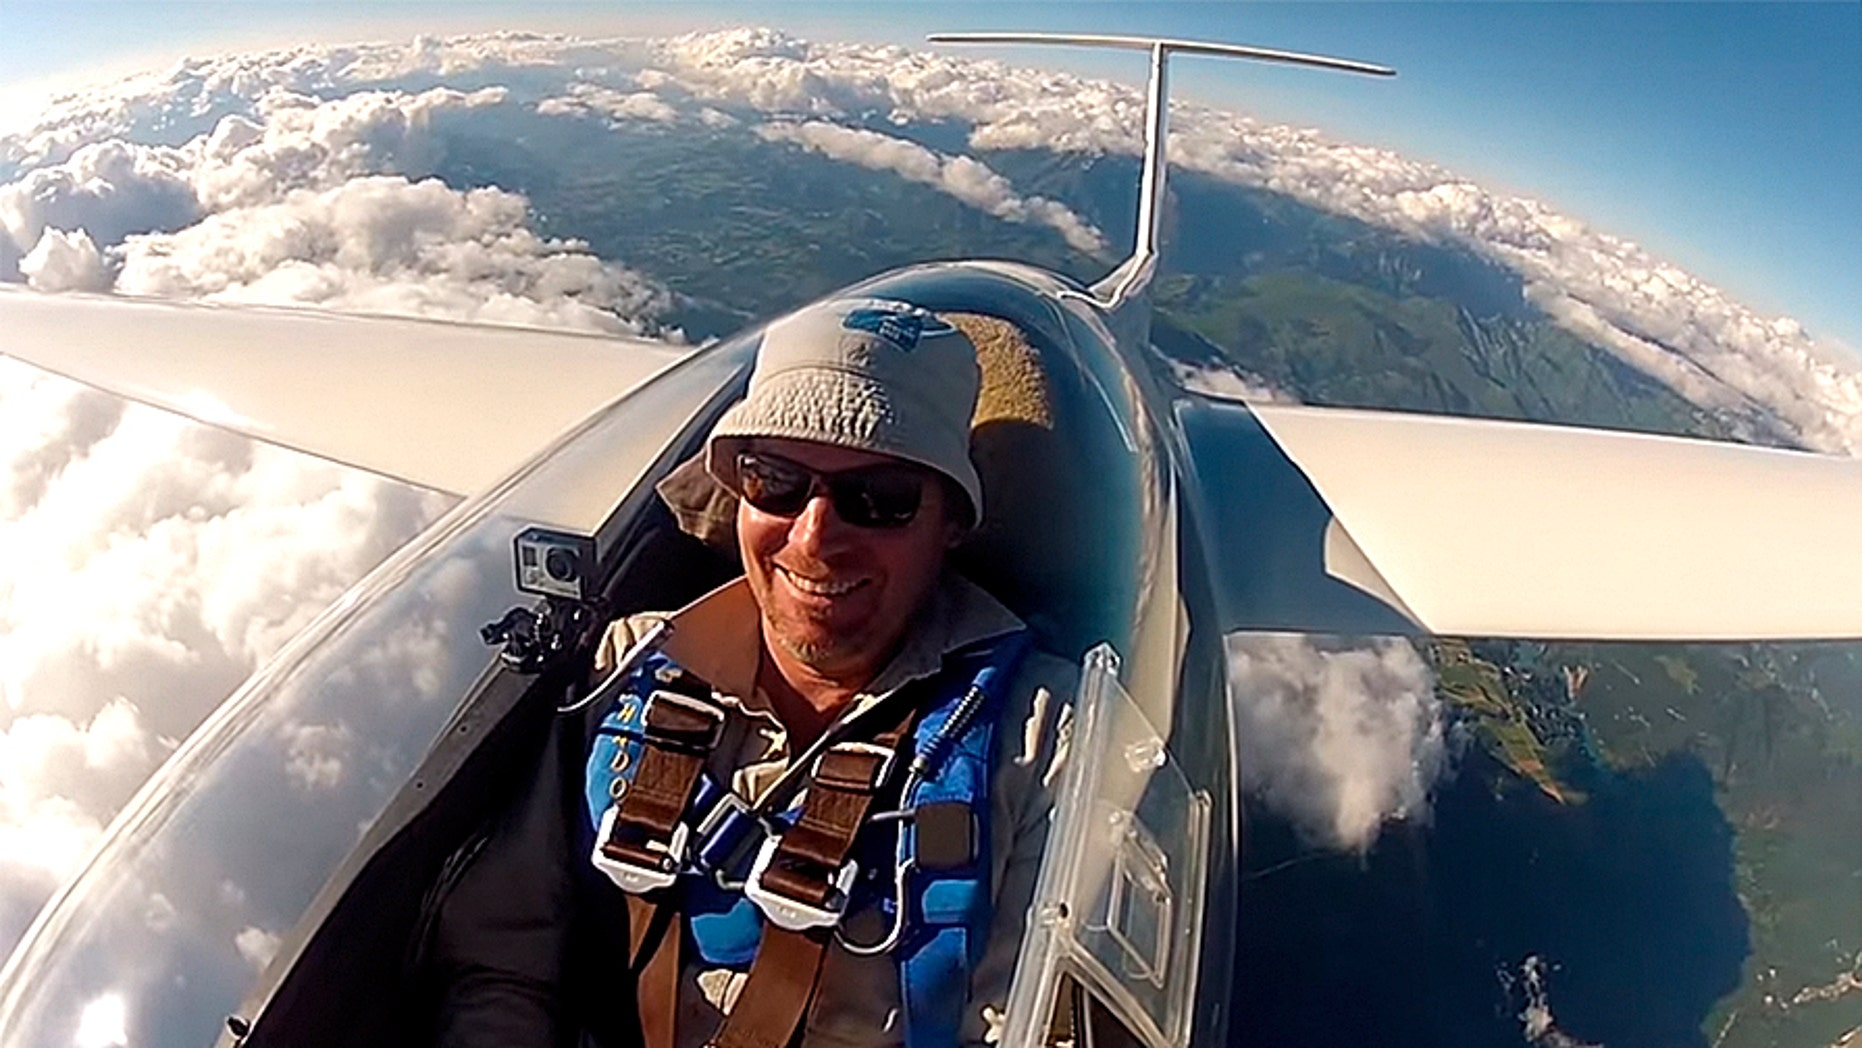 """Matt Wright, also know as """"Balleka"""" to his YouTube followers, died in a tragic glider accident in Dec. 2016."""